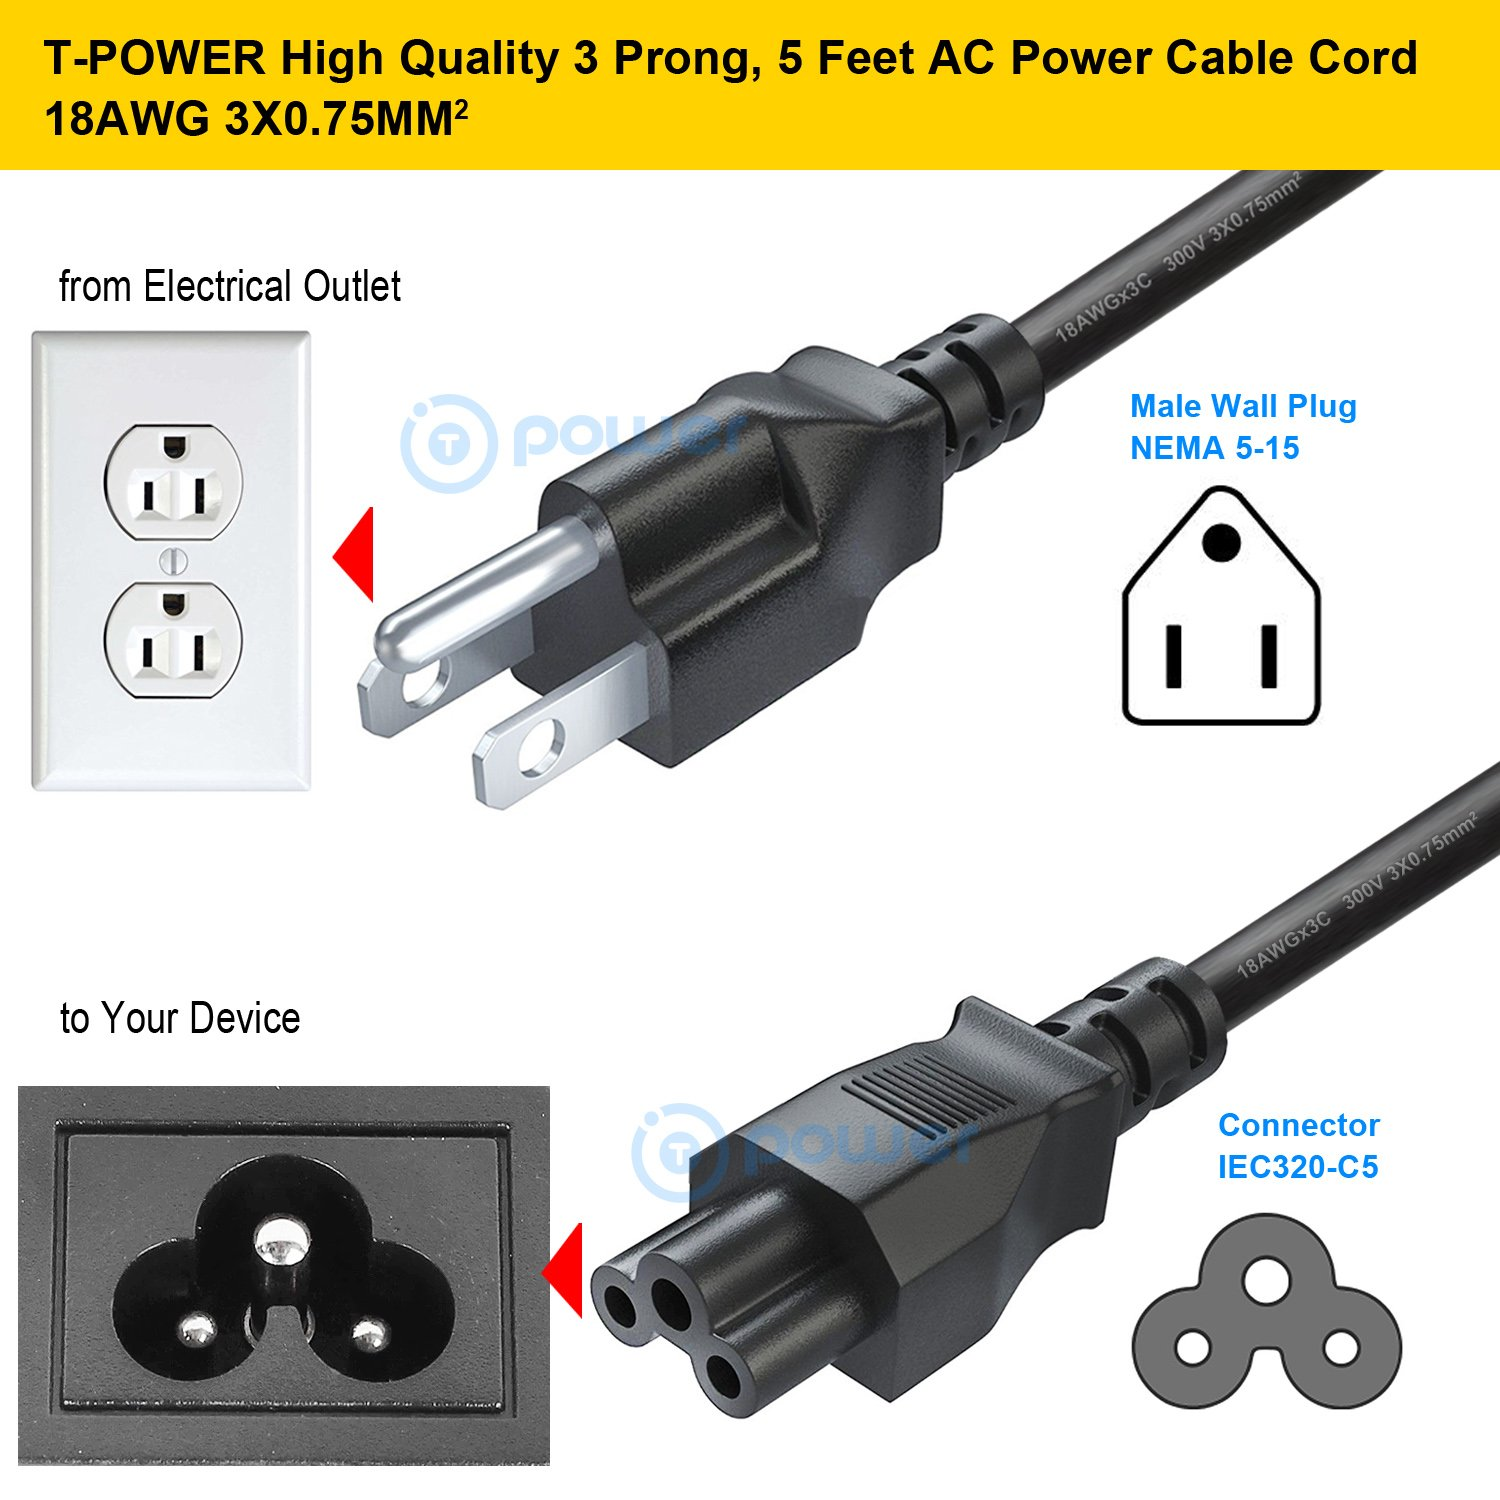 T Power 5ft Long 3 Prong Tv Cord For Lg Led Lcd Heavyduty 3wire Replacement Male Electrical Plug Amazoncom Smart 1080p Hdtv 32lb5600 42ln5400 42lb5600 42ln5700 42ln5300 47lb5800 50lb5900 55lb5900